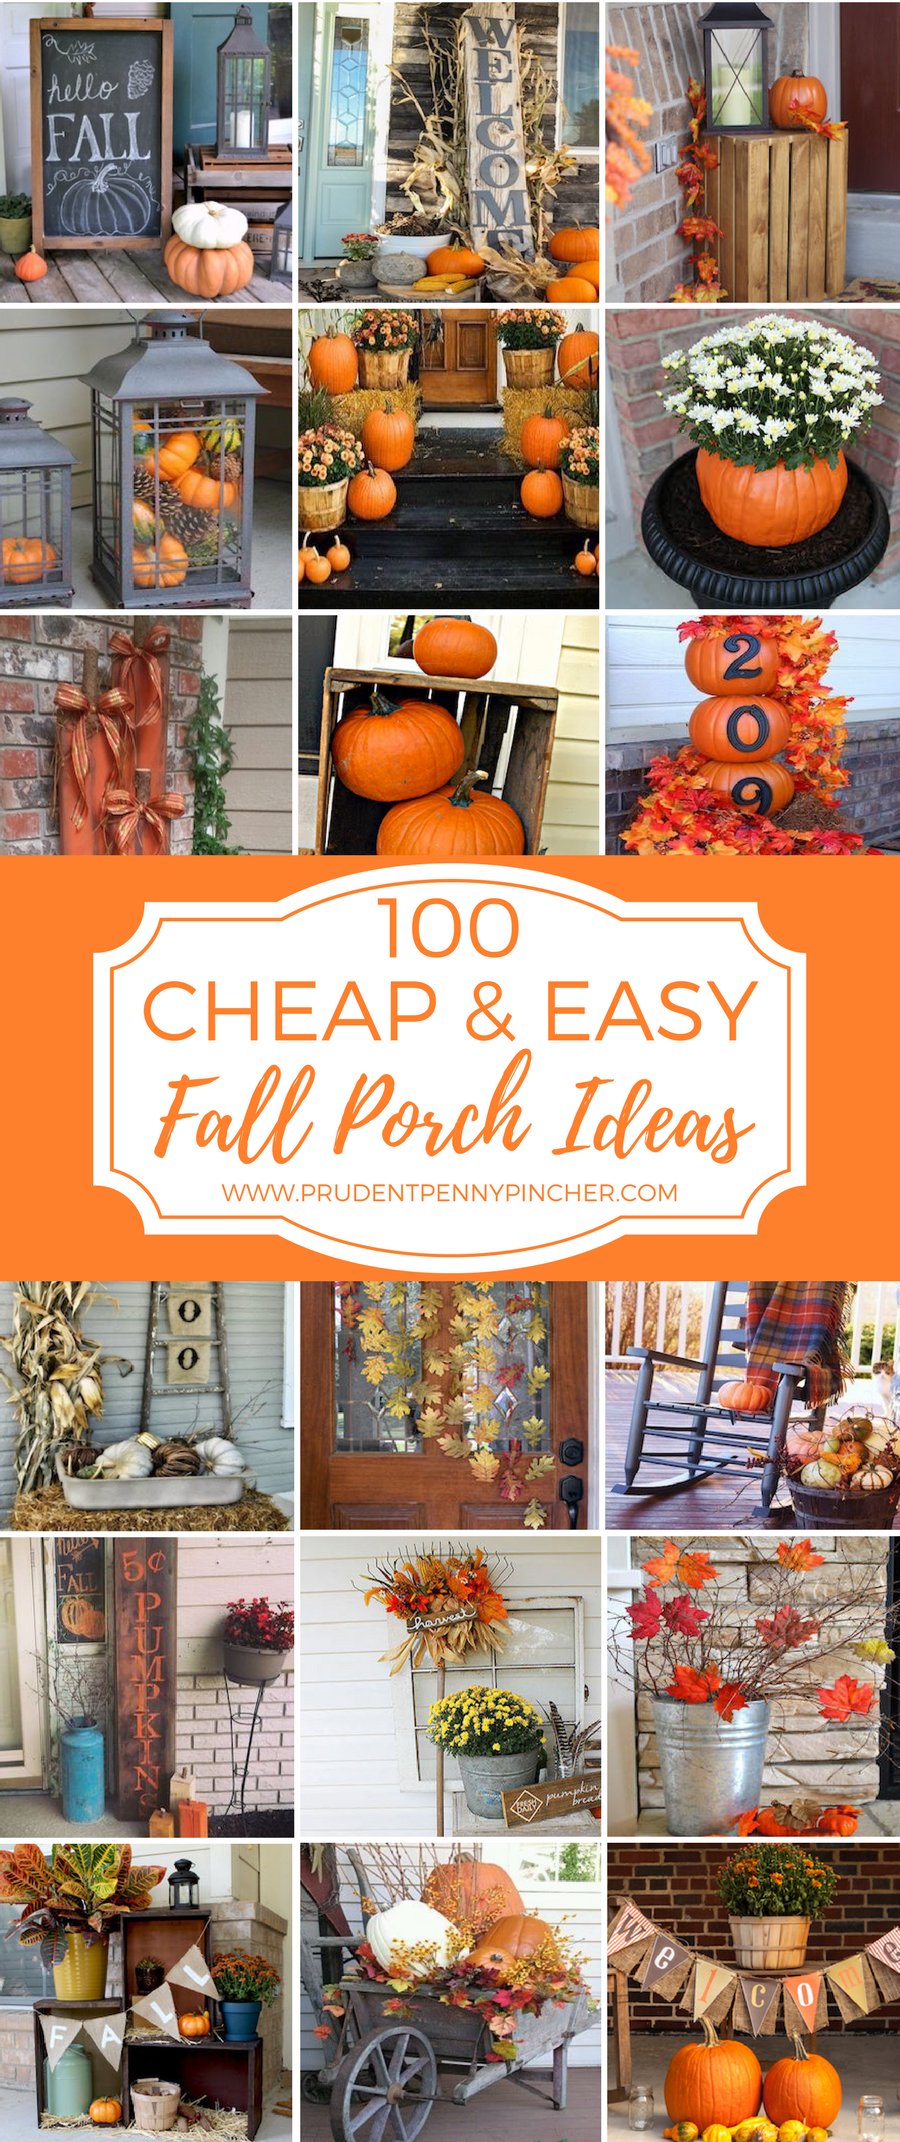 Uncategorized Fall Porch Decorating Ideas Pictures 100 cheap and easy fall porch decor ideas holidays ideas